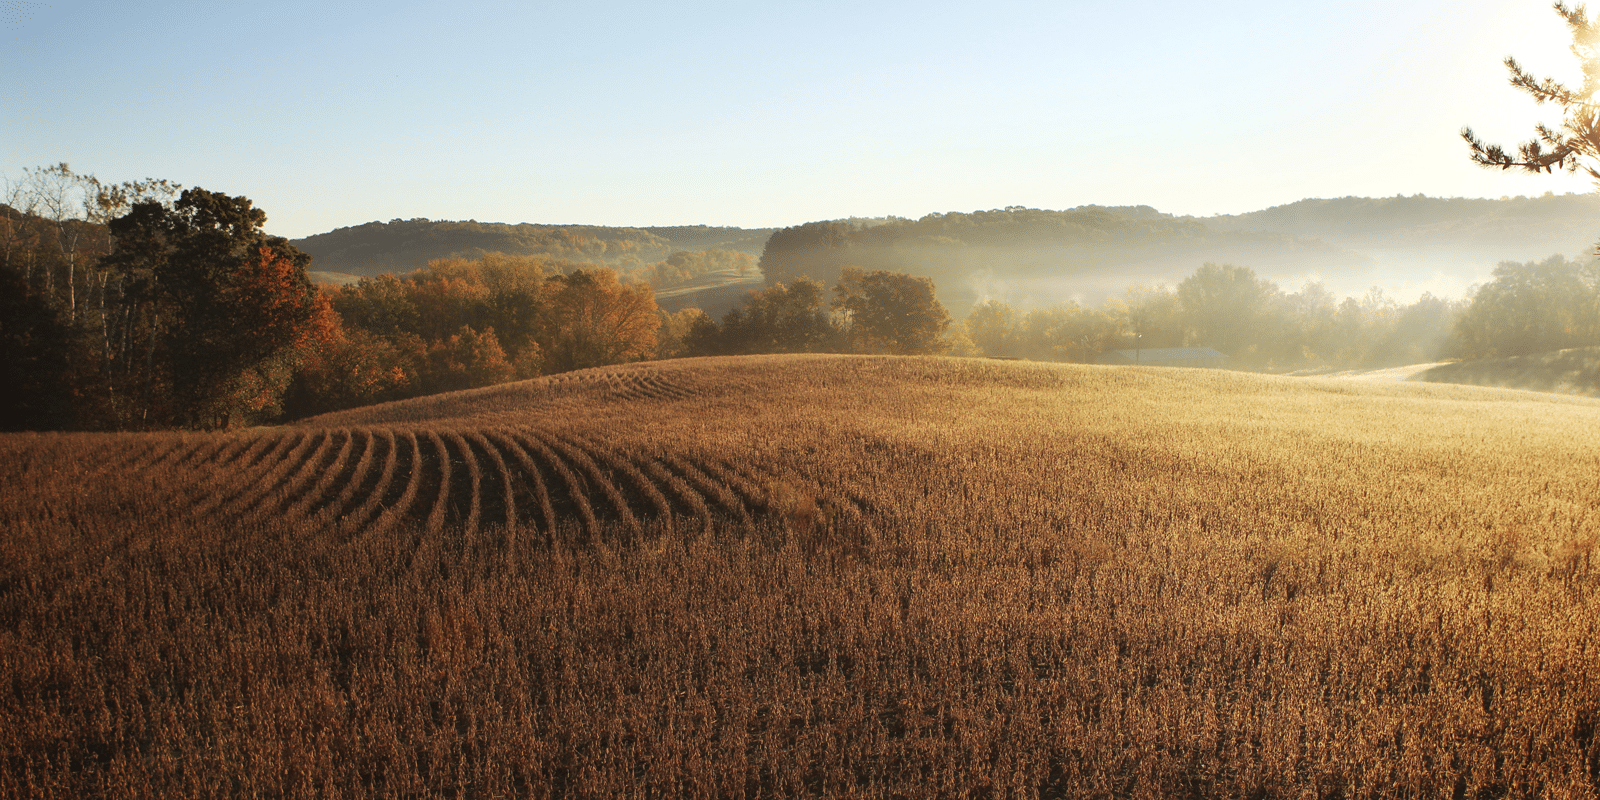 A golden, sunlit cornfield with fog over trees in the background